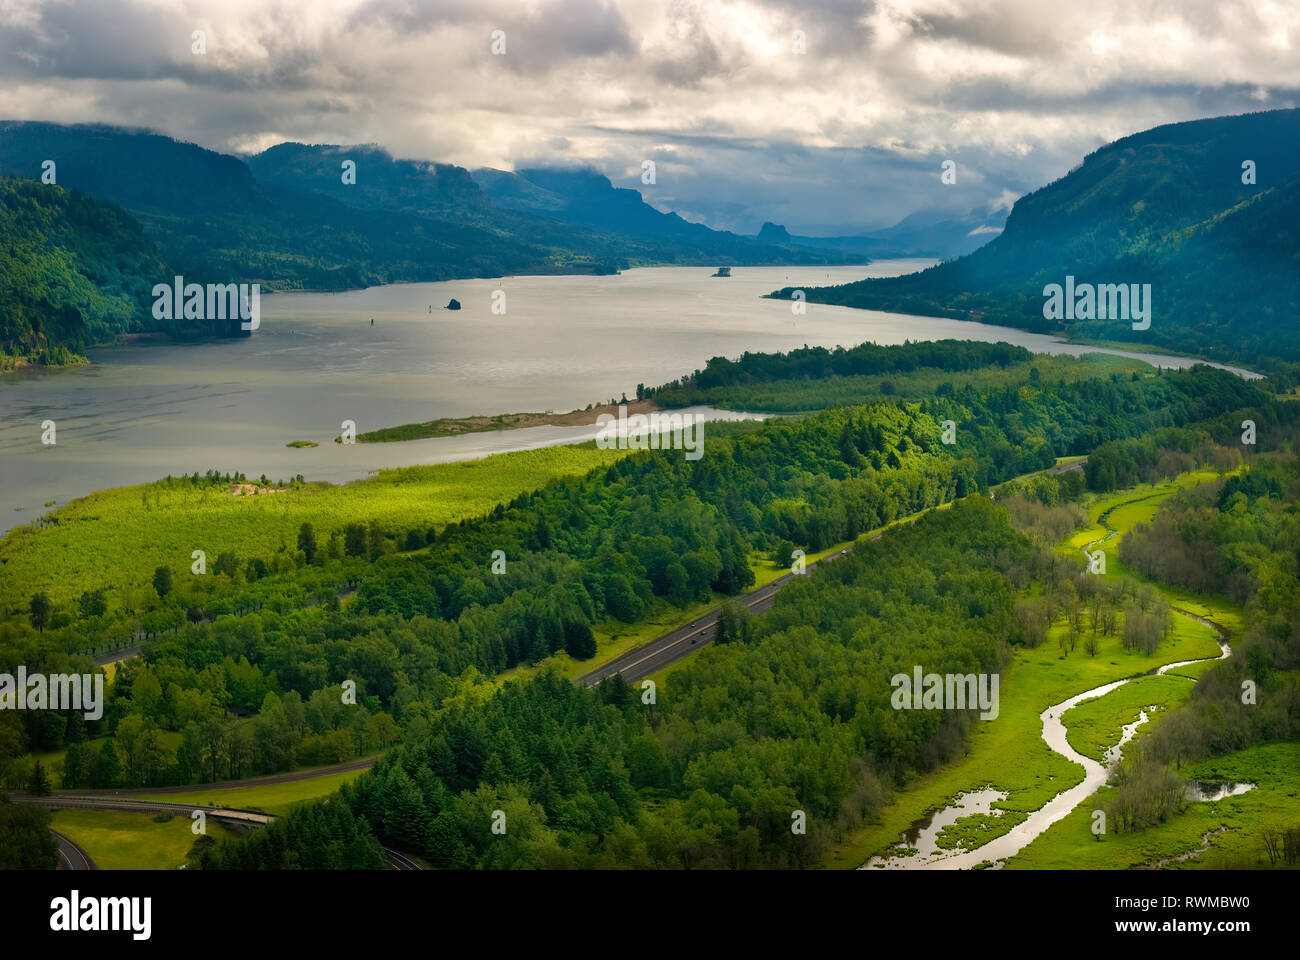 Interstate 84 Stock Photos & Interstate 84 Stock Images - Alamy